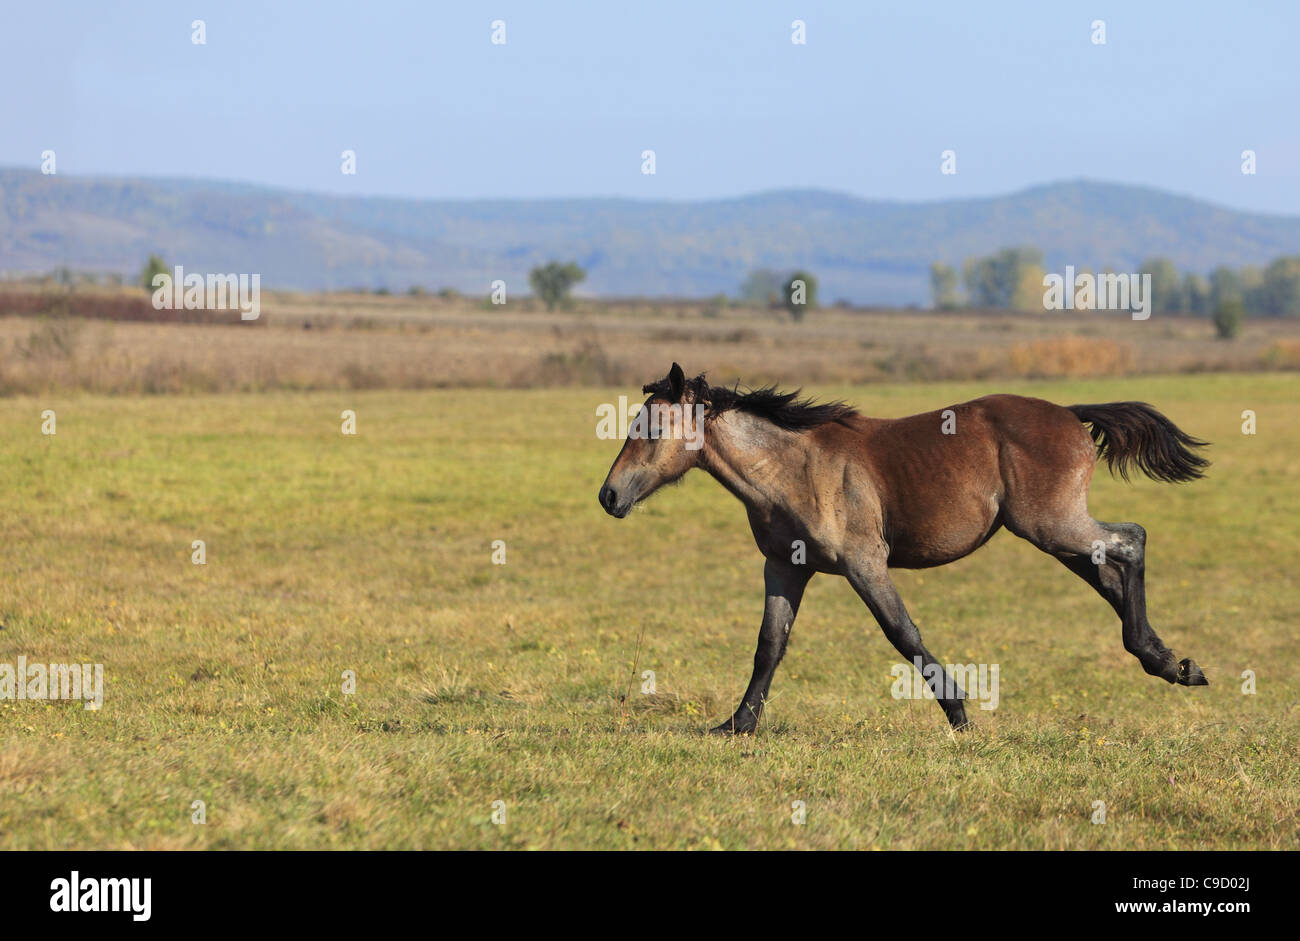 A foal running solely in an autumn field. - Stock Image